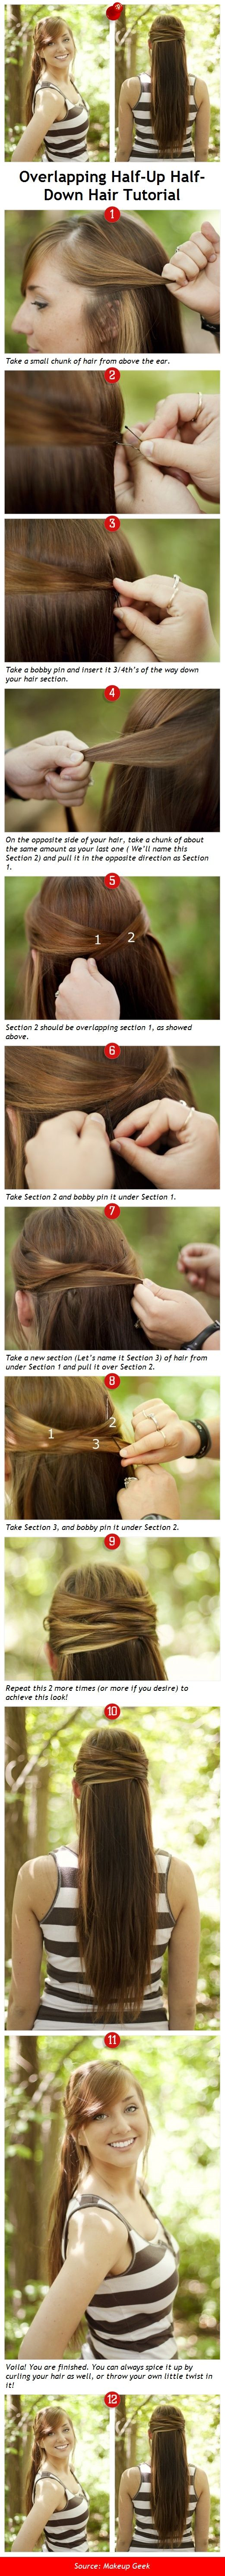 Overlapping Half Up Half Down Hairstyle Tutorial